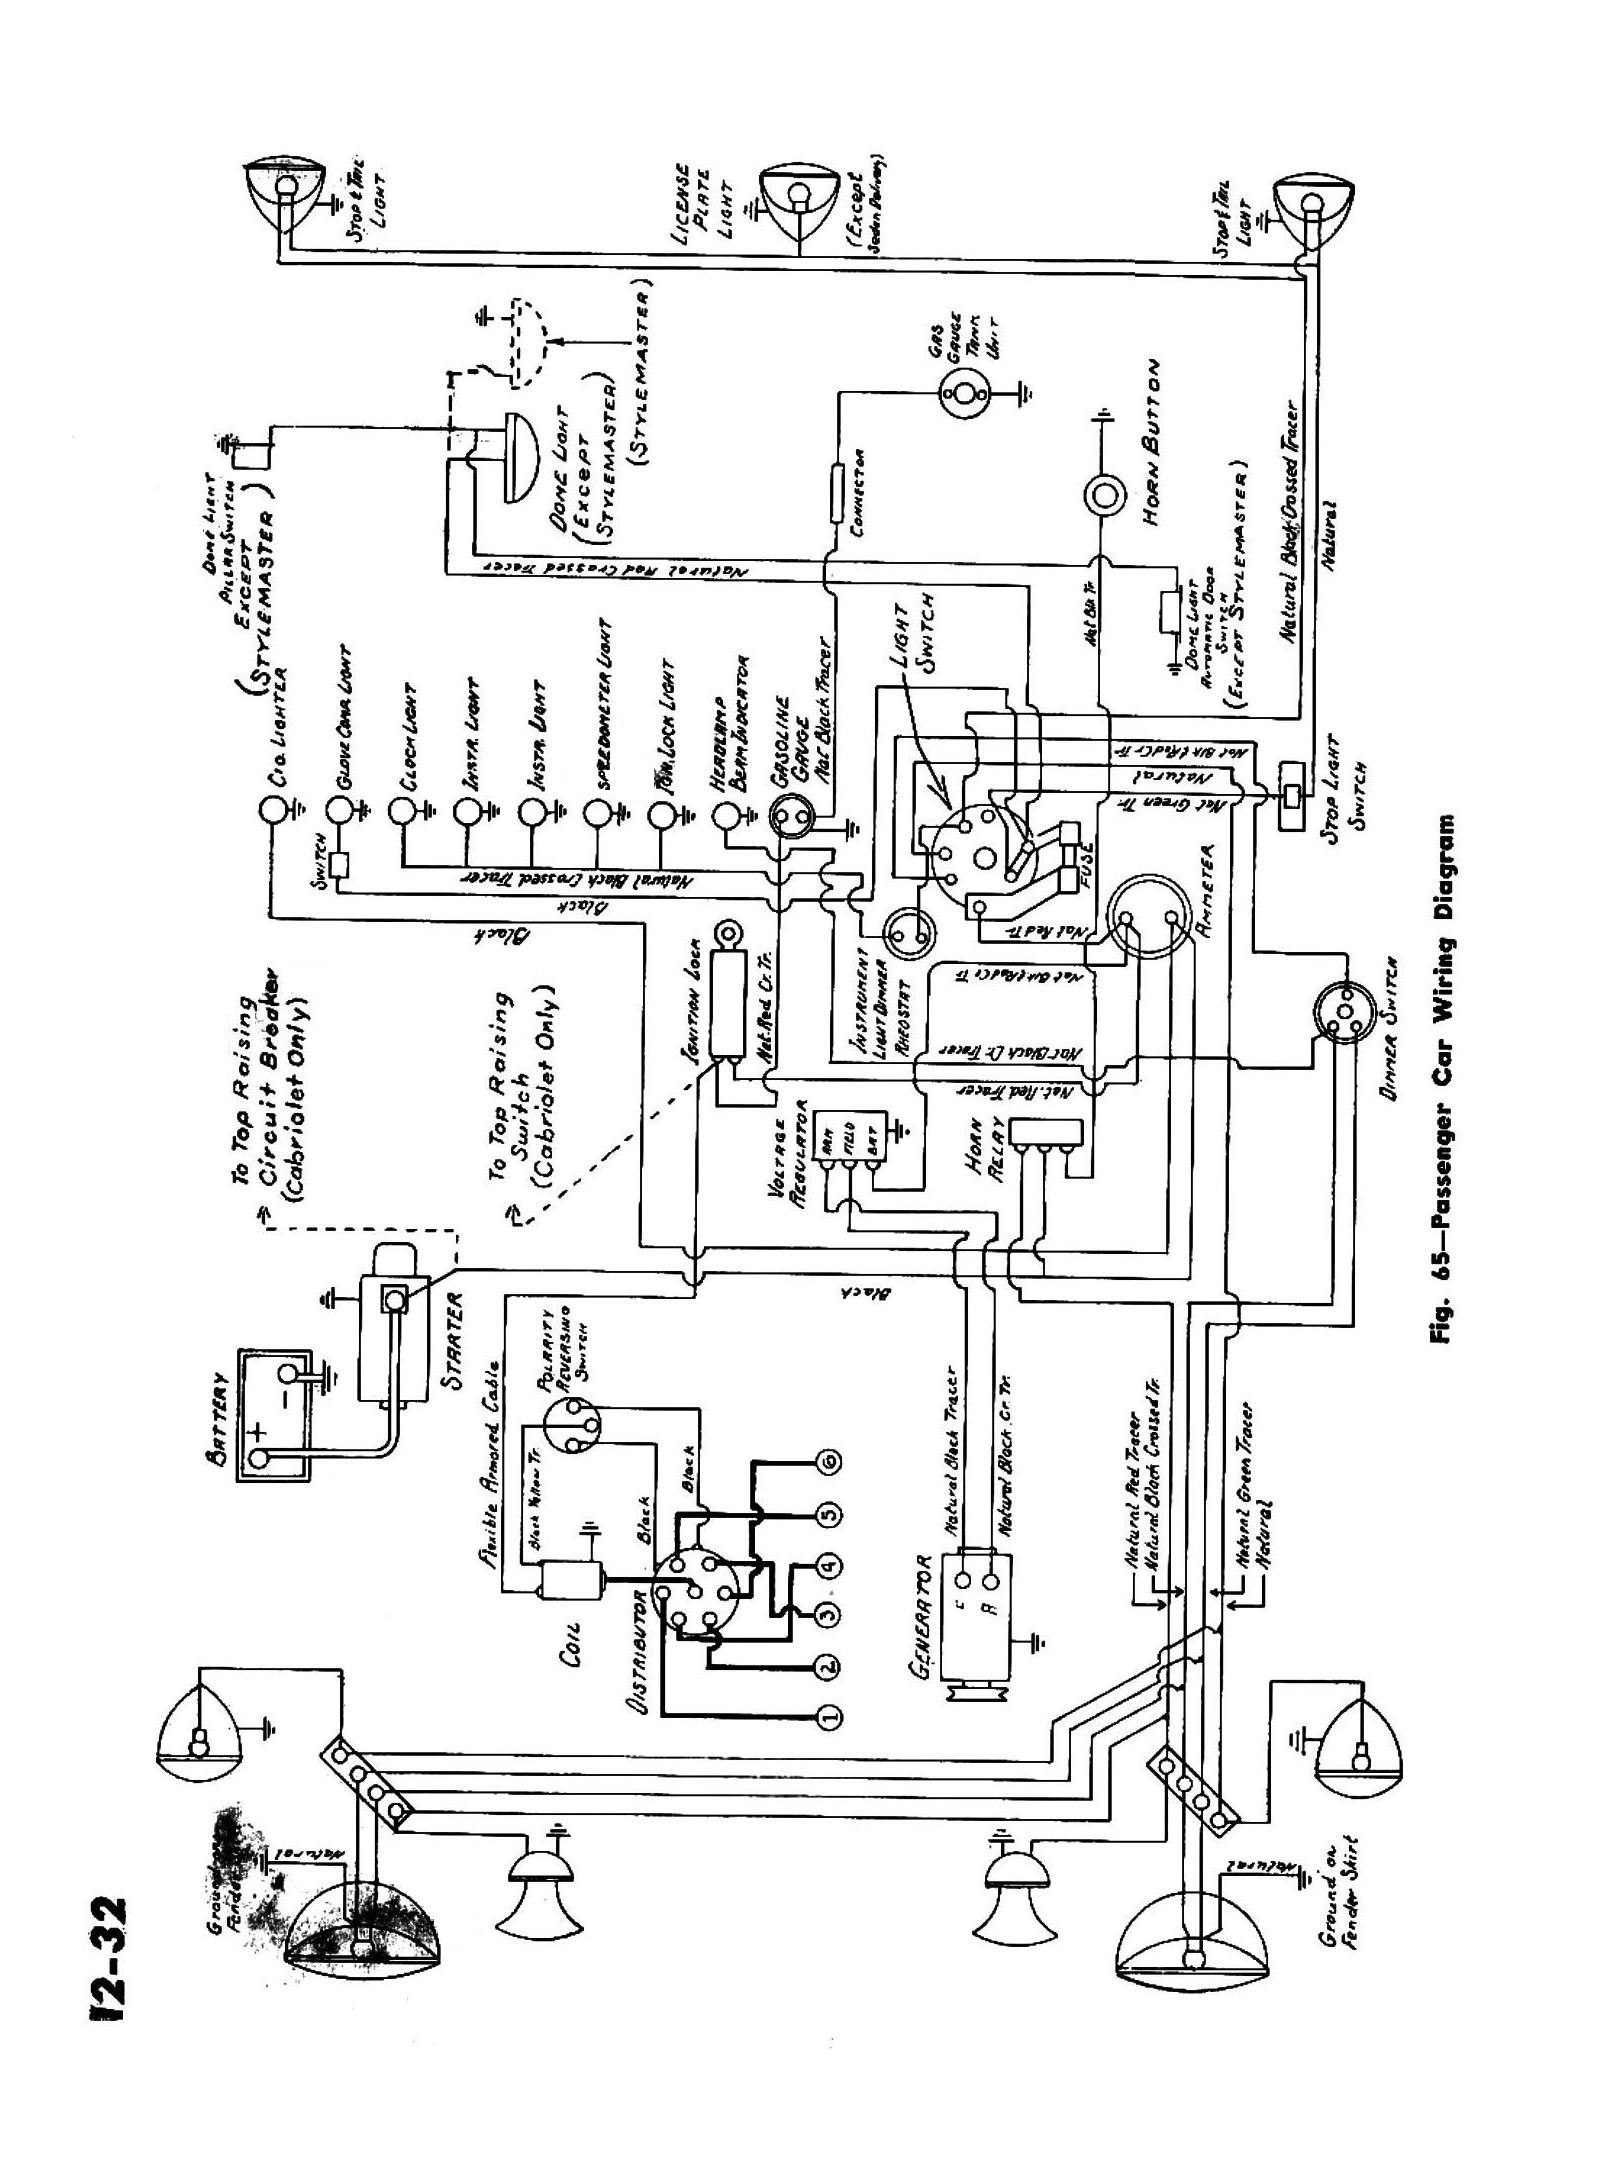 45car chevy wiring diagrams electrical wiring diagrams for cars at panicattacktreatment.co